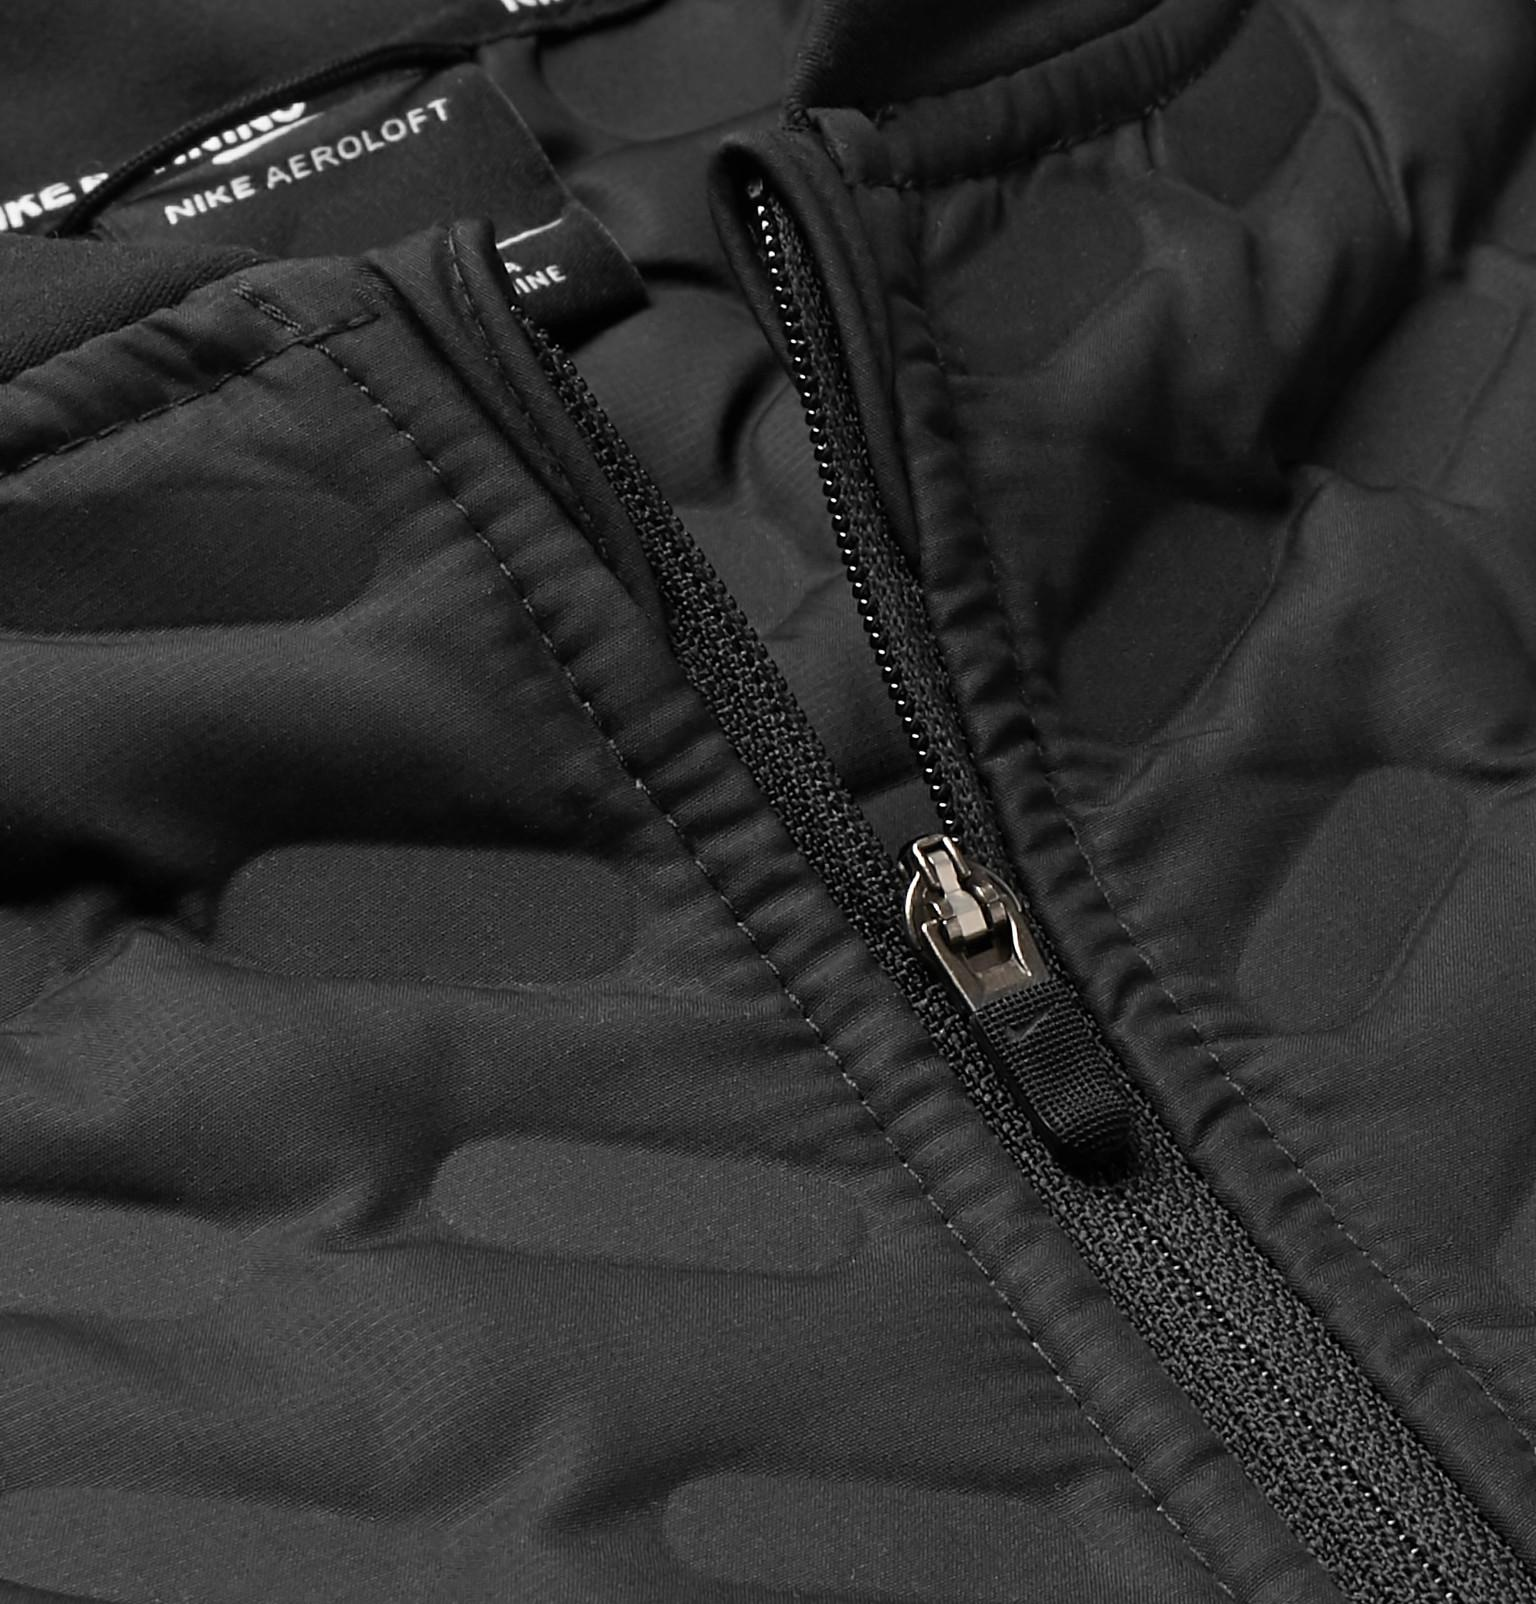 4d1a5f4ccef5 Men Quilted Perforated In Shell Jacket Aeroloft For Nike Black Lyst  RqtwCxEzn